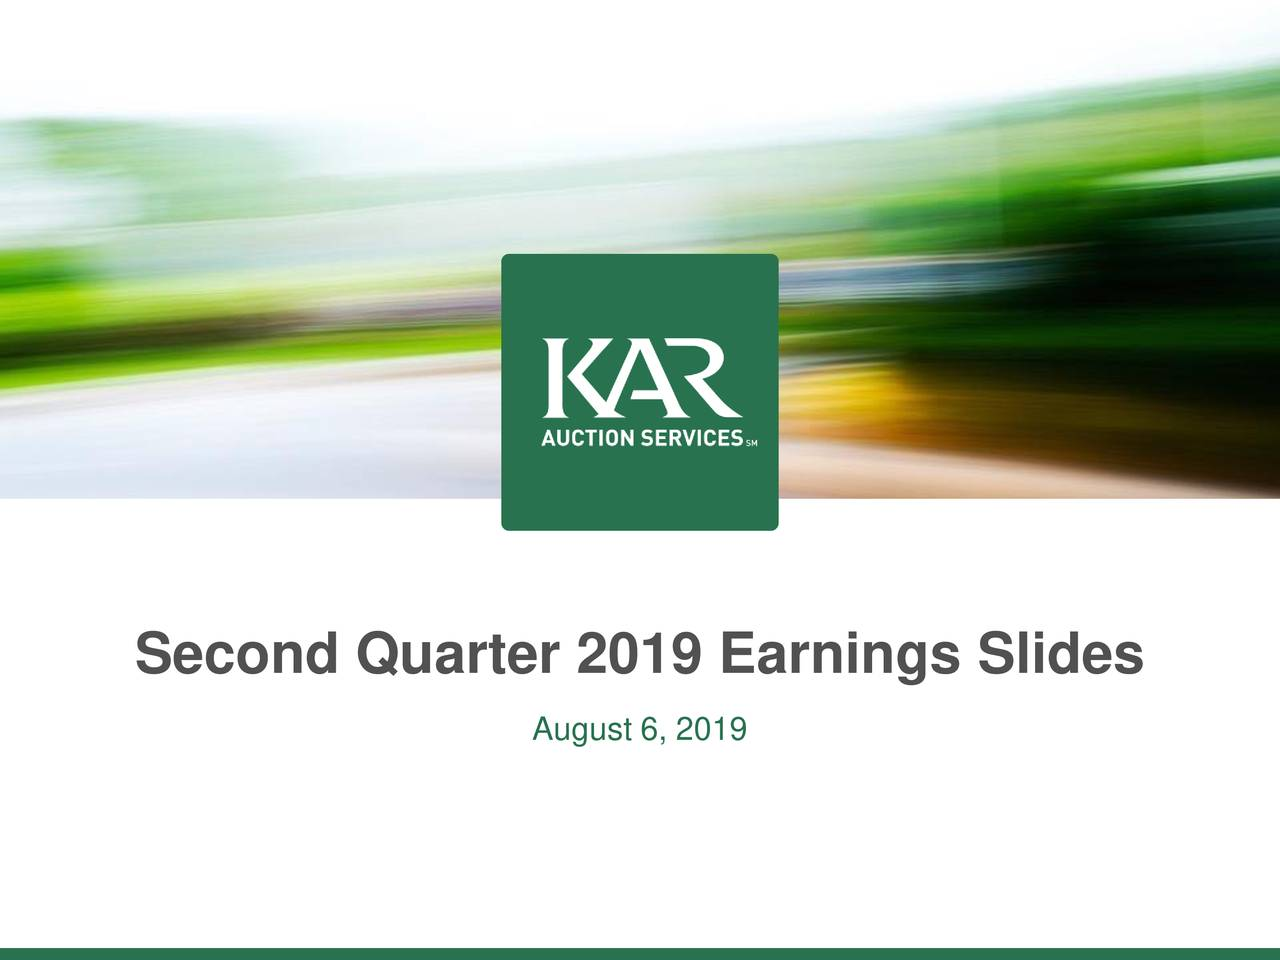 Second Quarter 2019 Earnings Slides